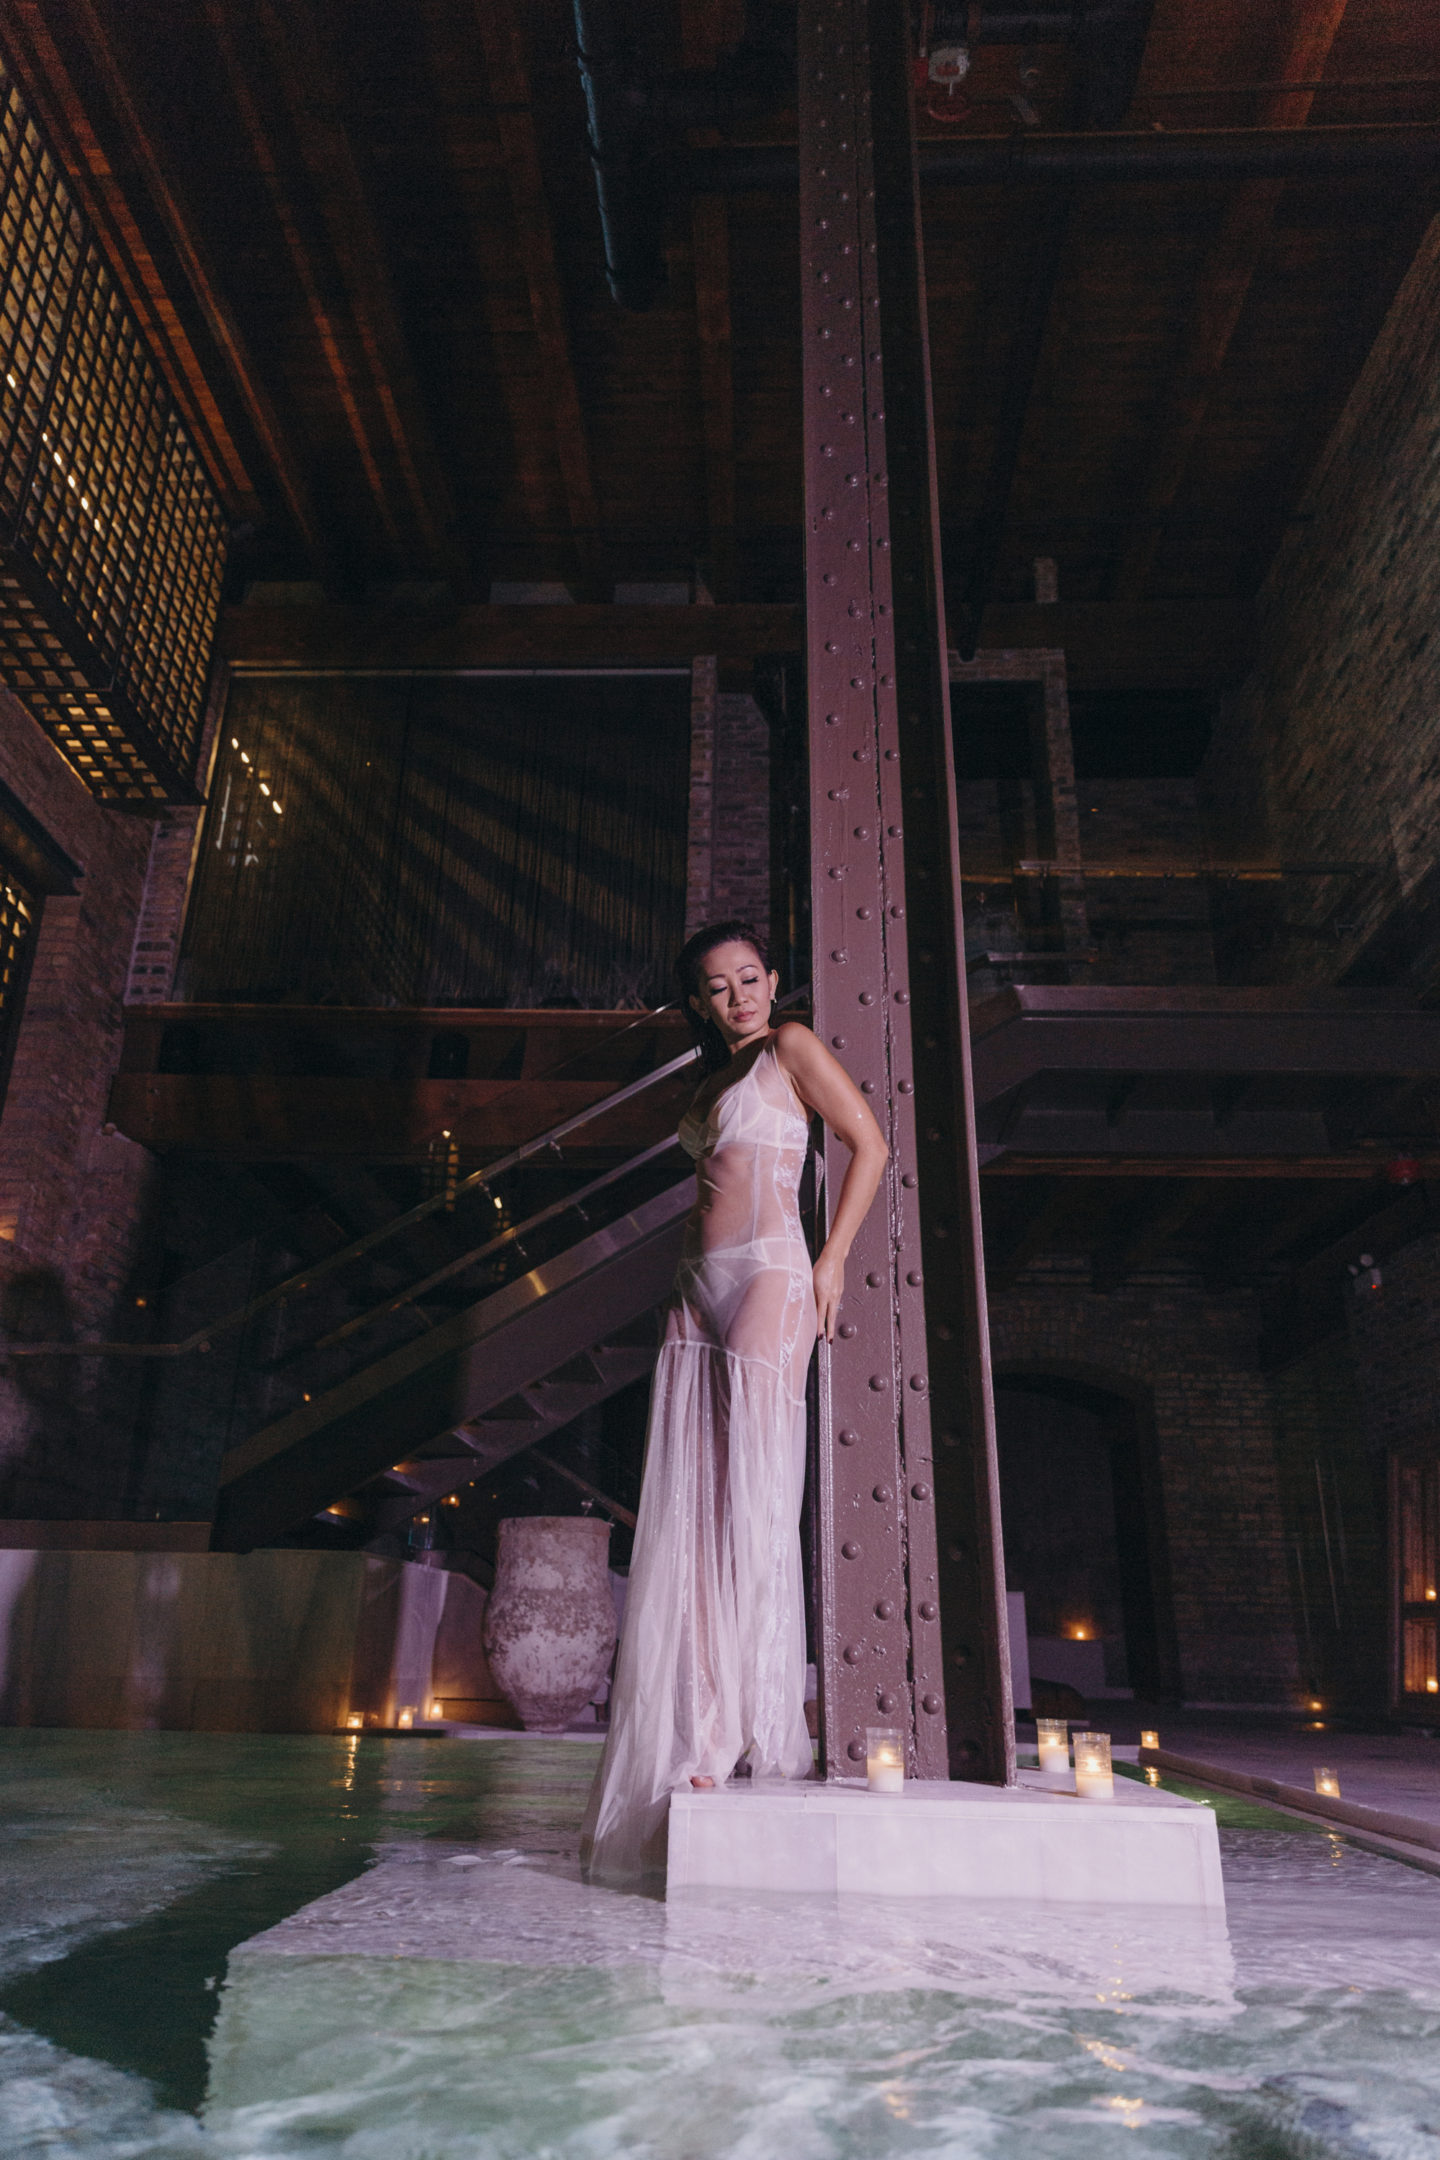 aire ancient baths photoshoot with alina tsvor